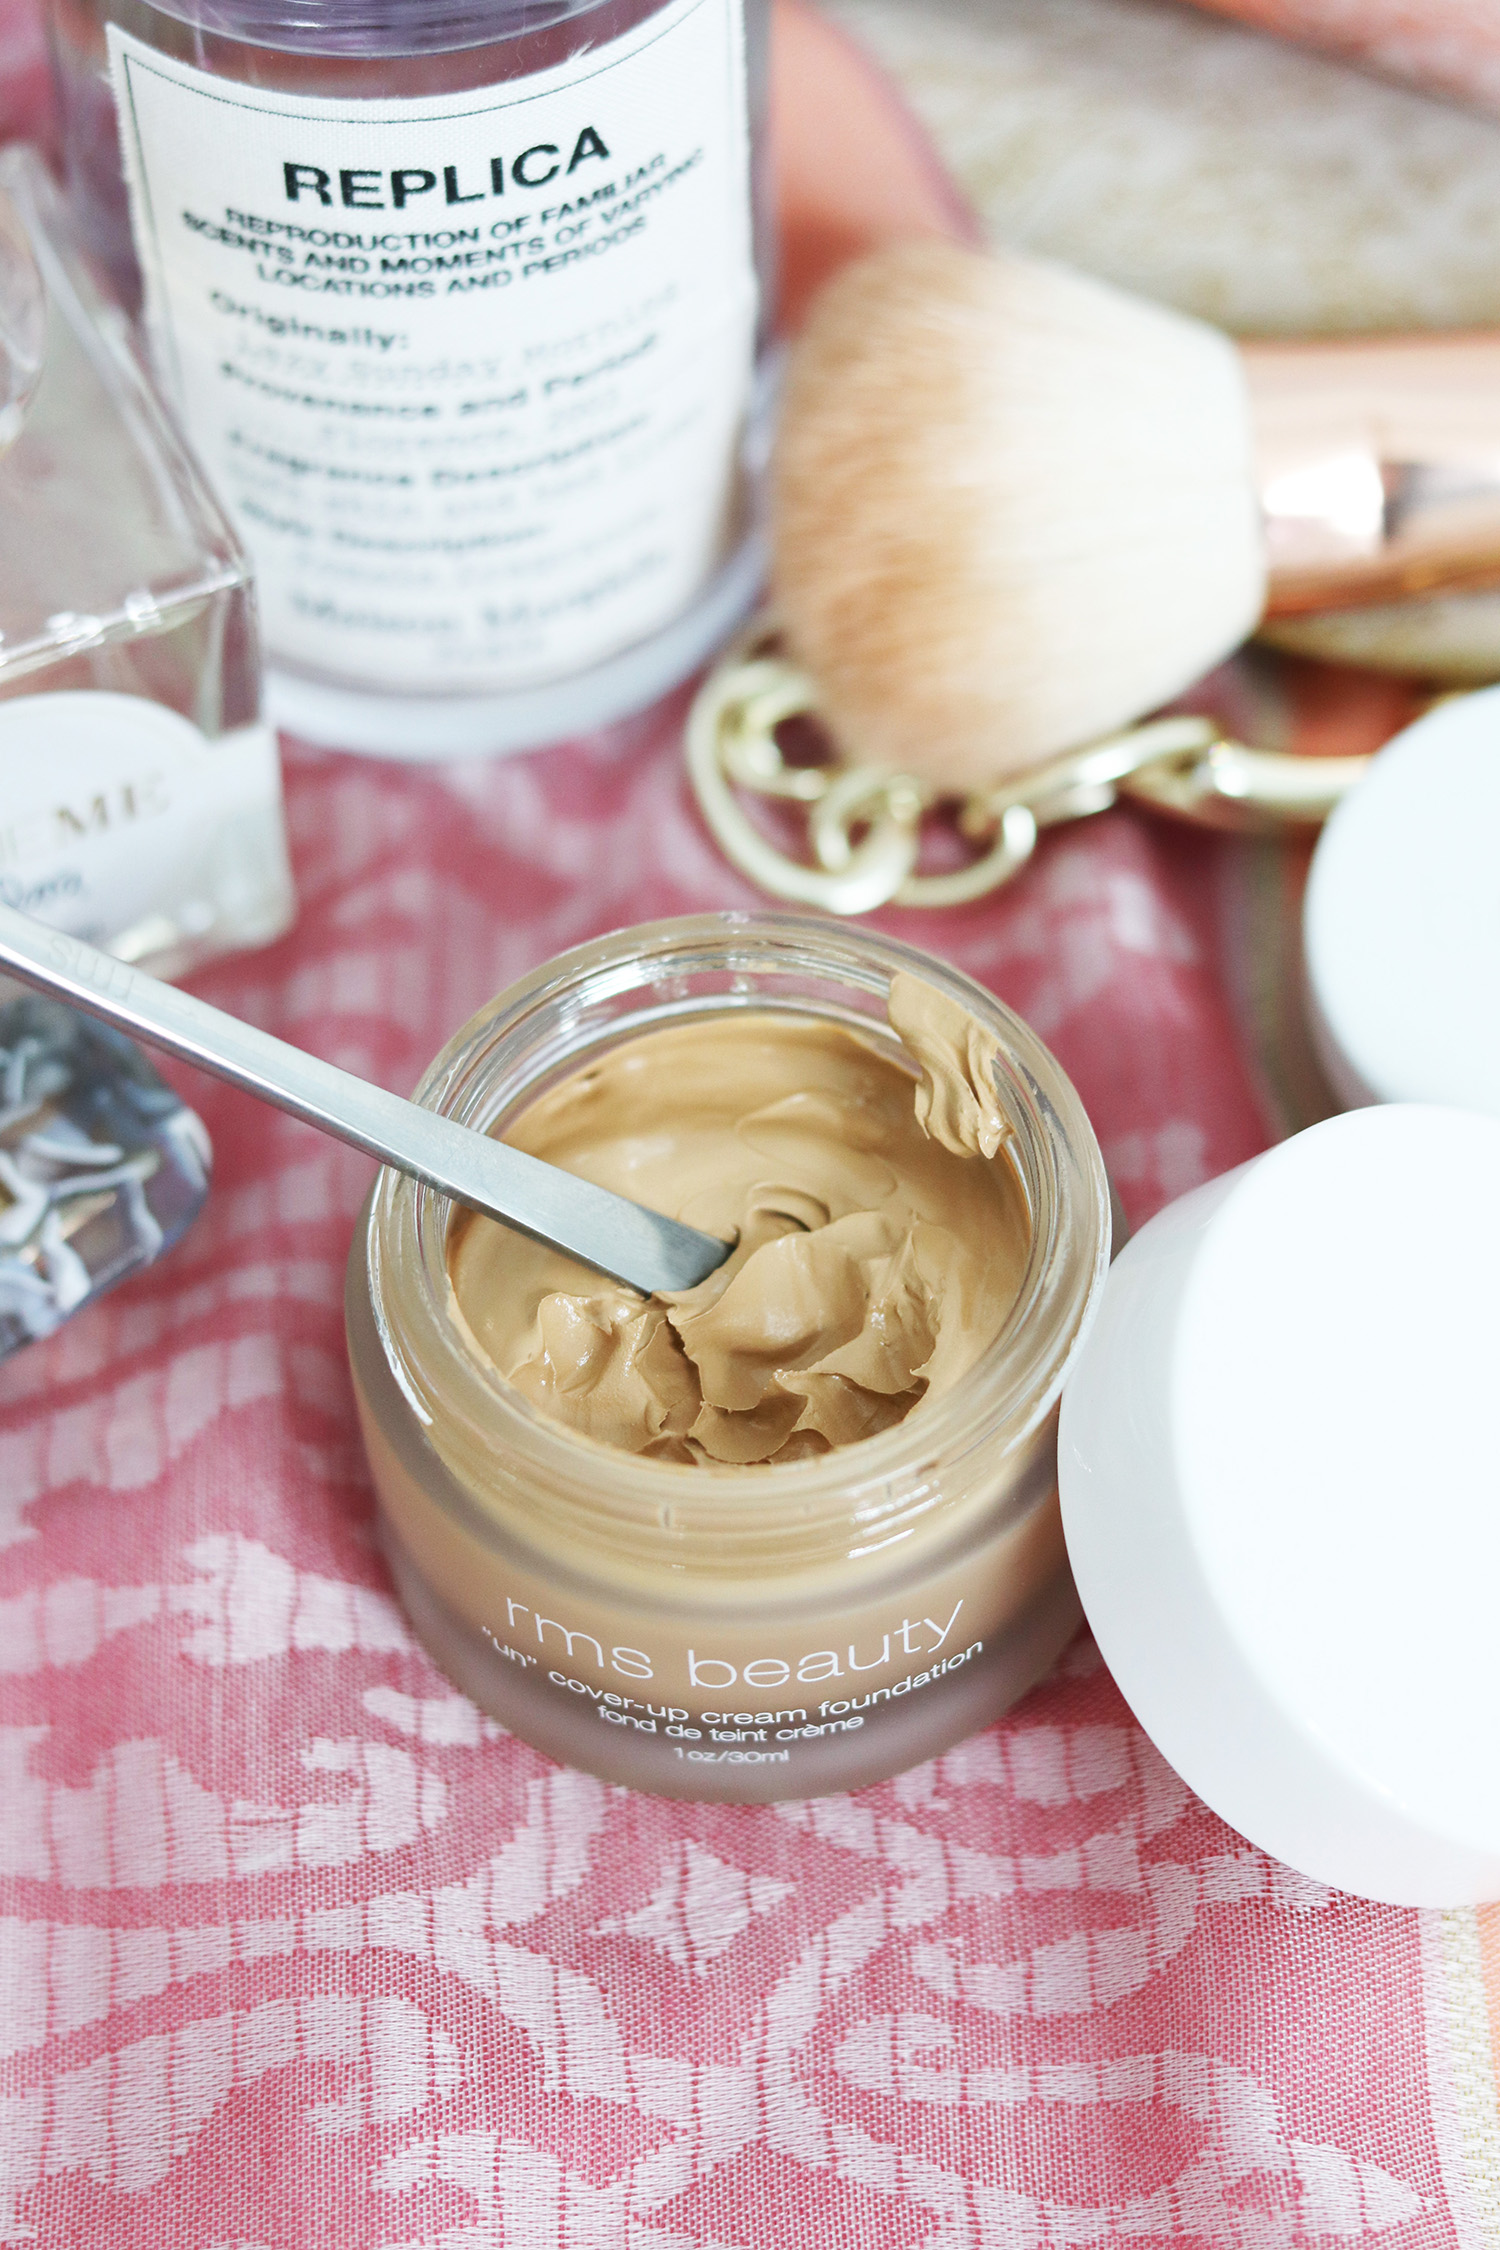 rms uncover up foundation shade 33 review | clean beauty full coverage foundation